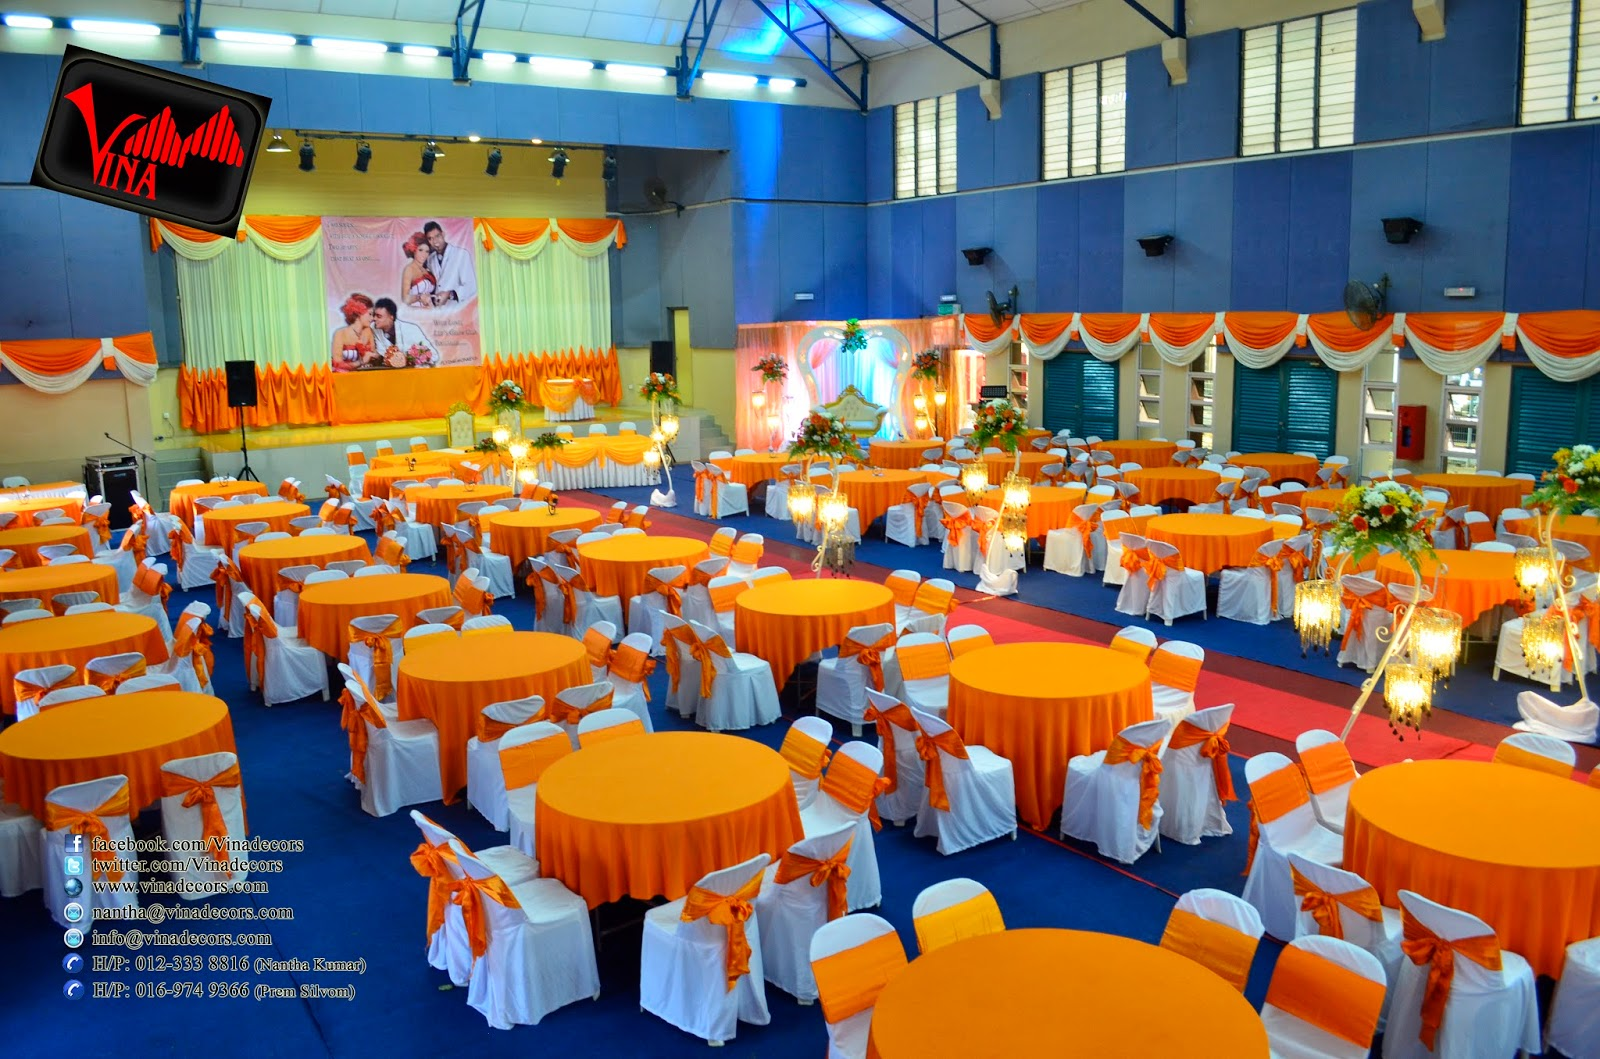 Wedding Dinner Decoration at Dewan Serbaguna Taman Maluri, Jln Wira 1, Kg Pandan, 55100 Kuala Lumpur on 22/03/2014 (Entrance Kolam Setting, Entrance Arch, Crystal Pillars, Main table Setting, Backdrop Setting on the stage and Photography Backdrop)  by Vina Canopy & Decor